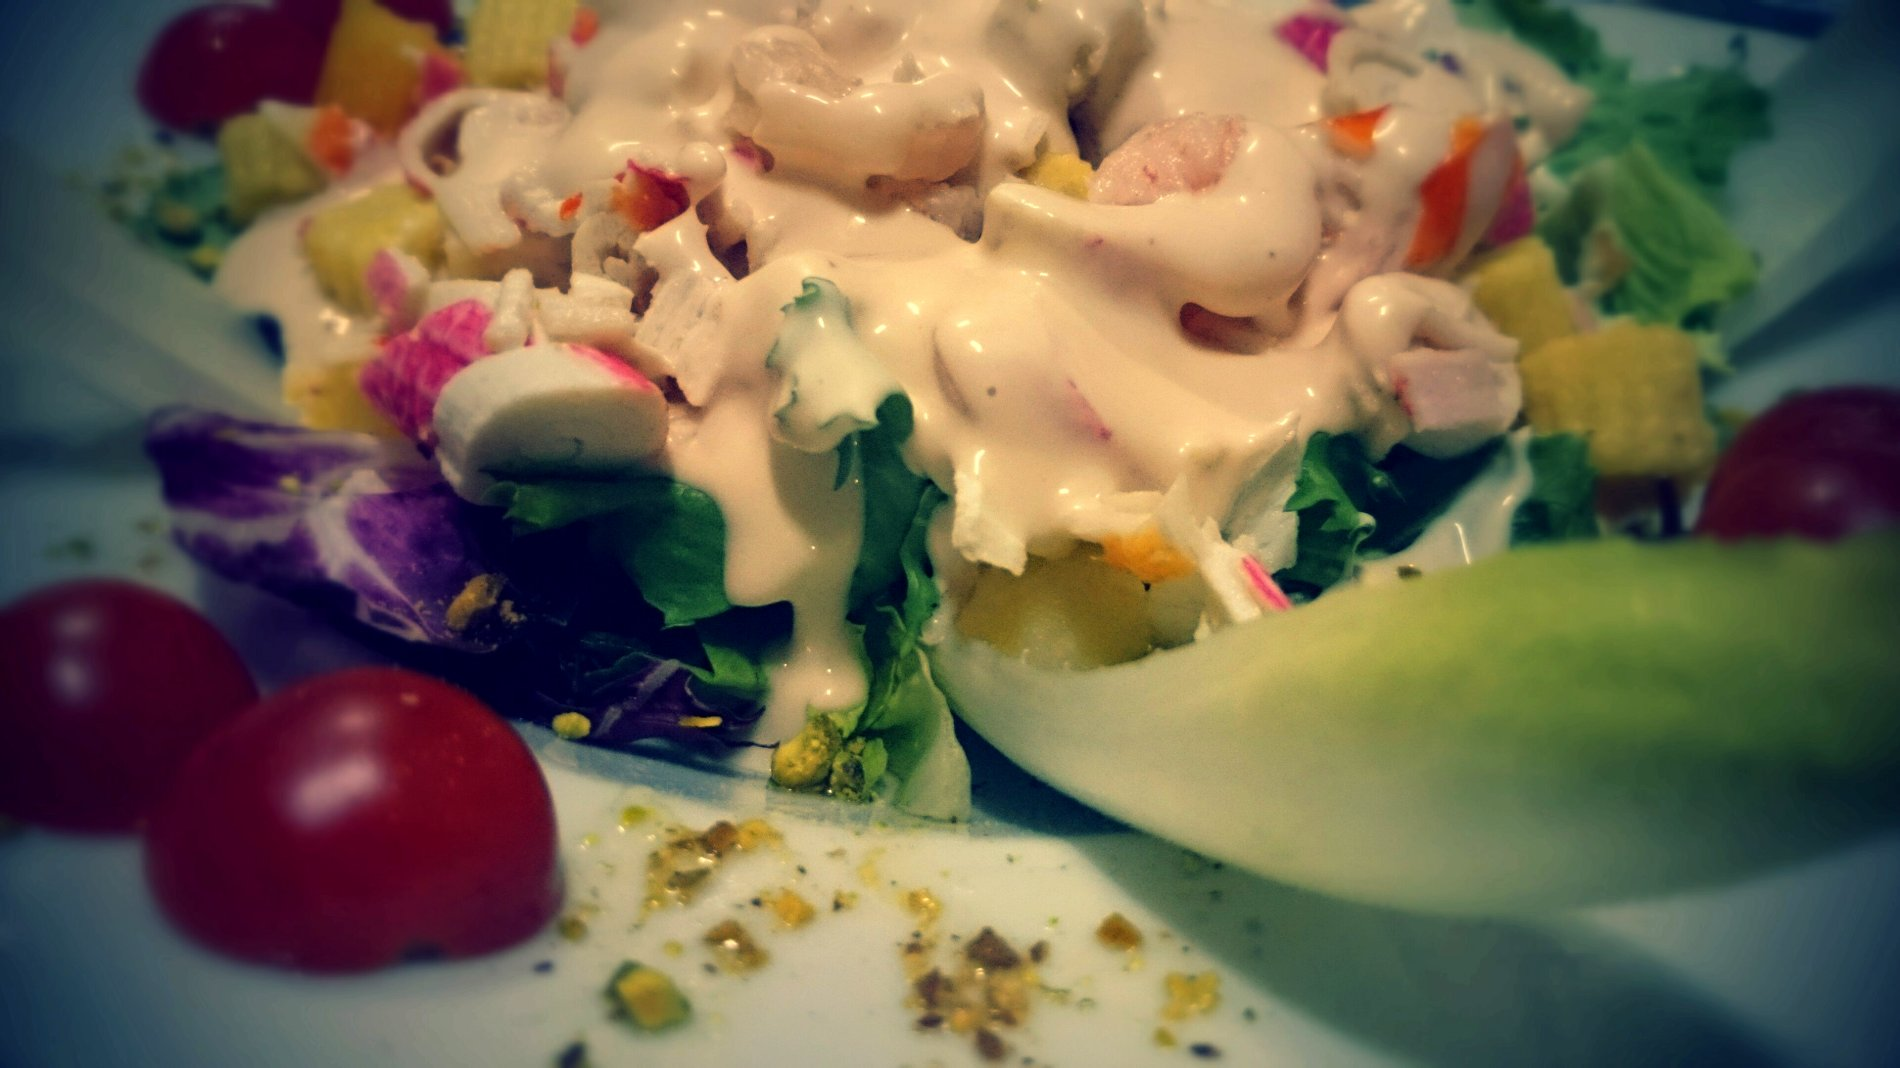 Ensalada Frutos de mar